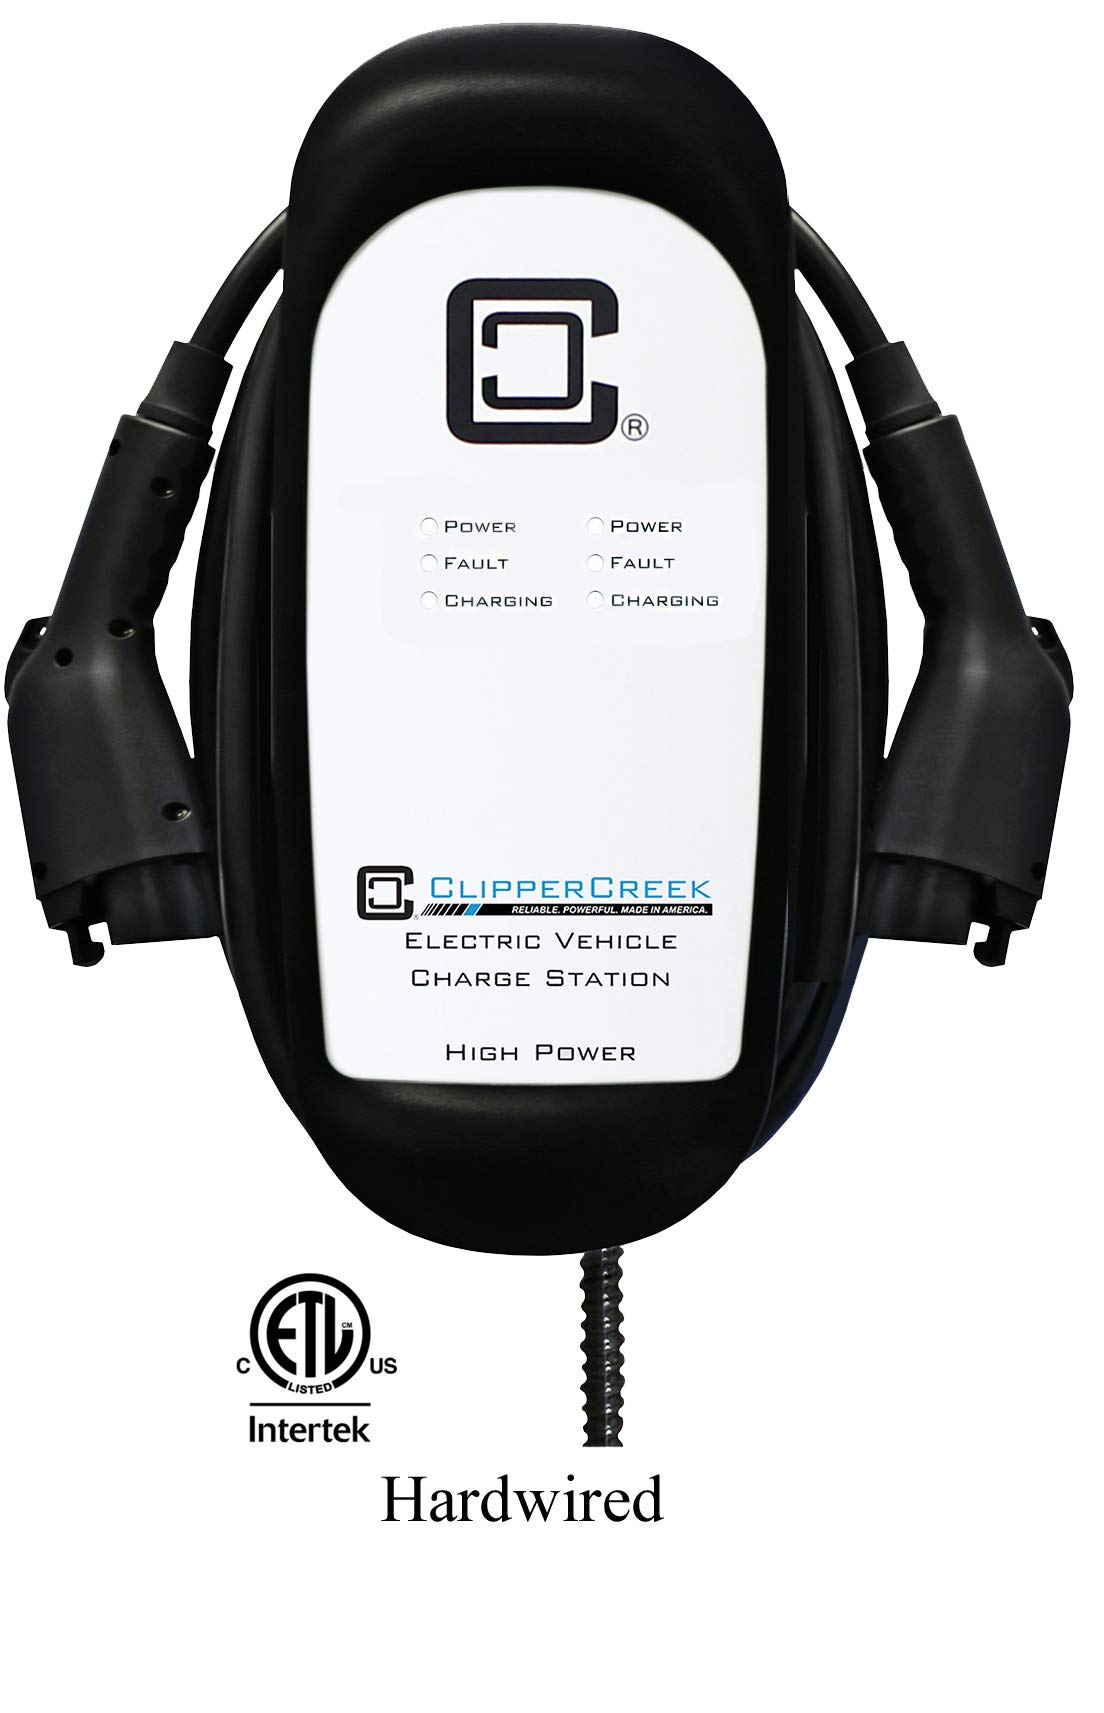 ClipperCreek Dual Charging Station, Level 2, 240V, 32 Amps, Comes with Two 25-Foot Charging Cables and Connector Holsters